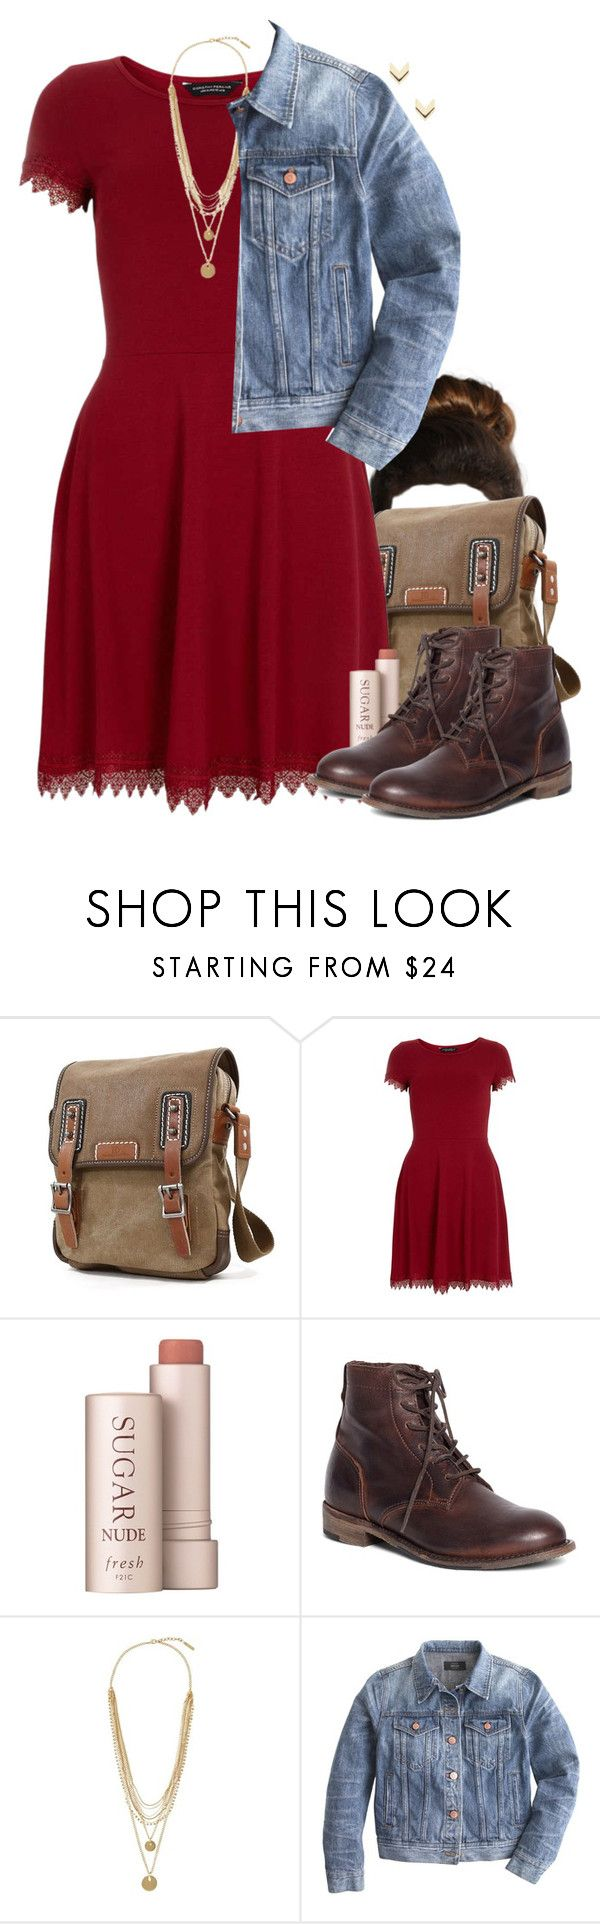 """""""Hermione Granger Inspired House Party Outfit"""" by hpstyle ❤ liked on Polyvore featuring Dorothy Perkins, Fresh, Brooks Brothers, Vince Camuto, J.Crew and Leslie Danzis"""